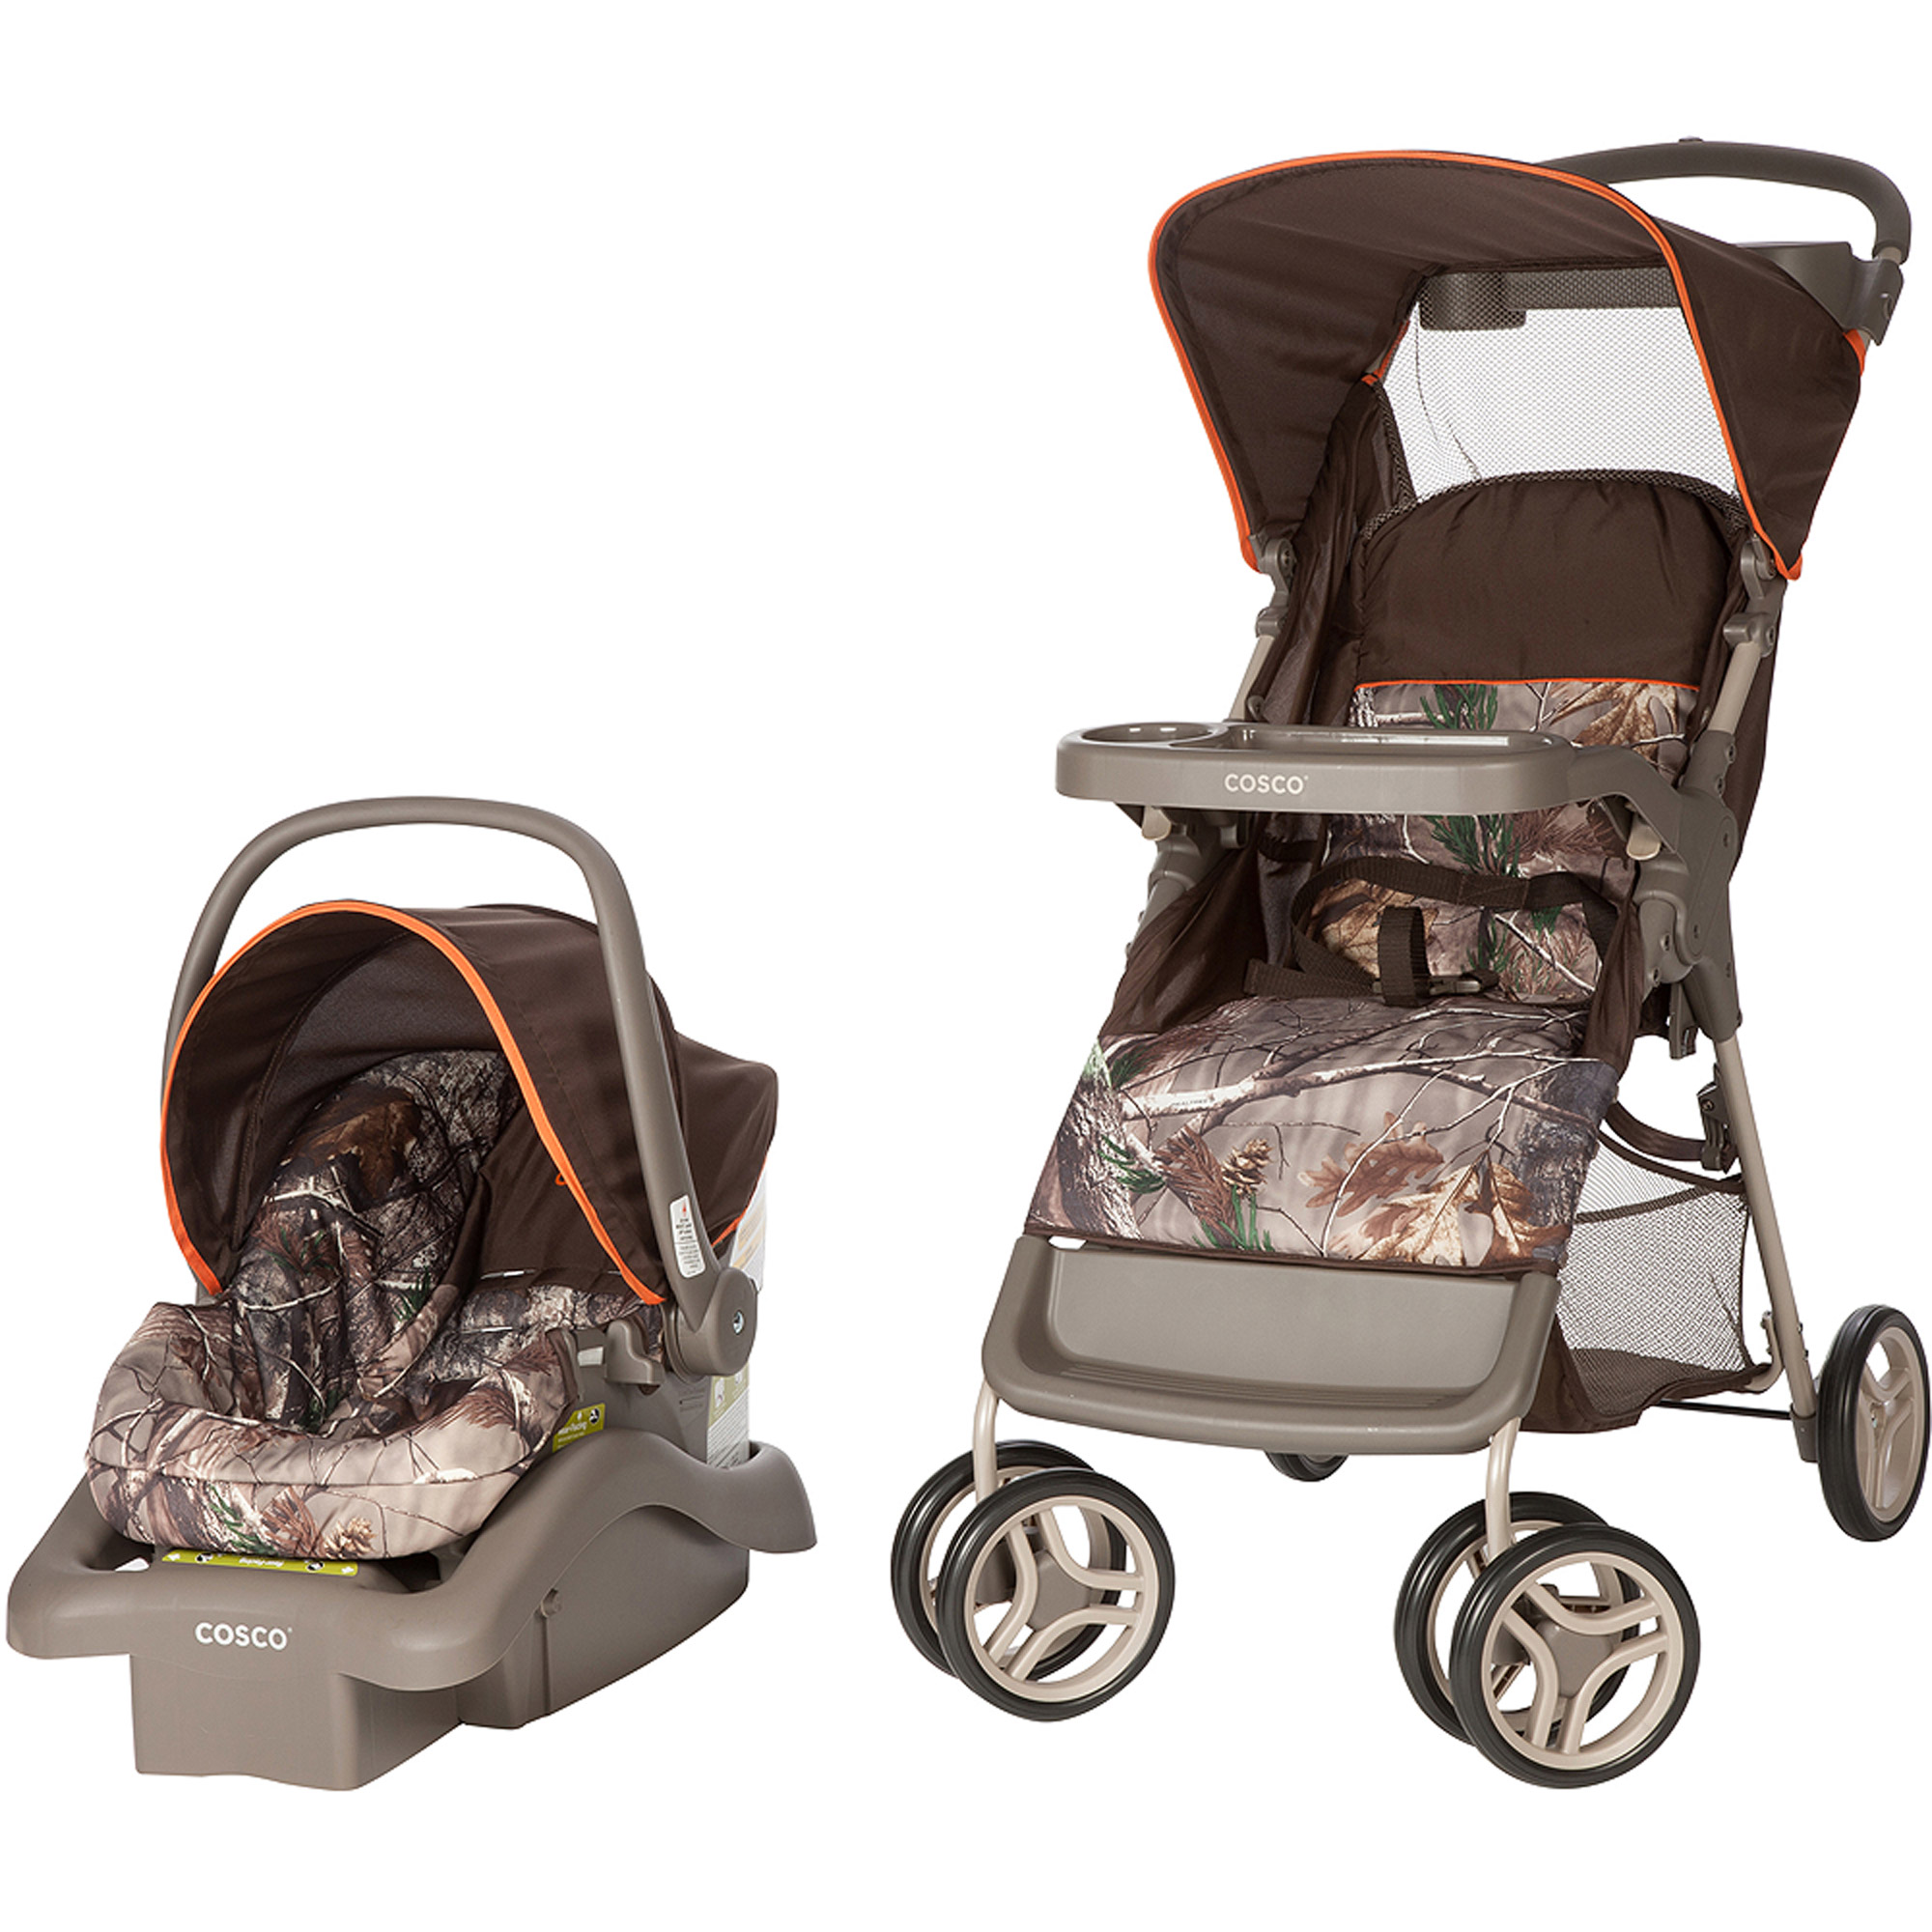 Cosco Lift And Stroll Travel System Realtree Orange 725880310567